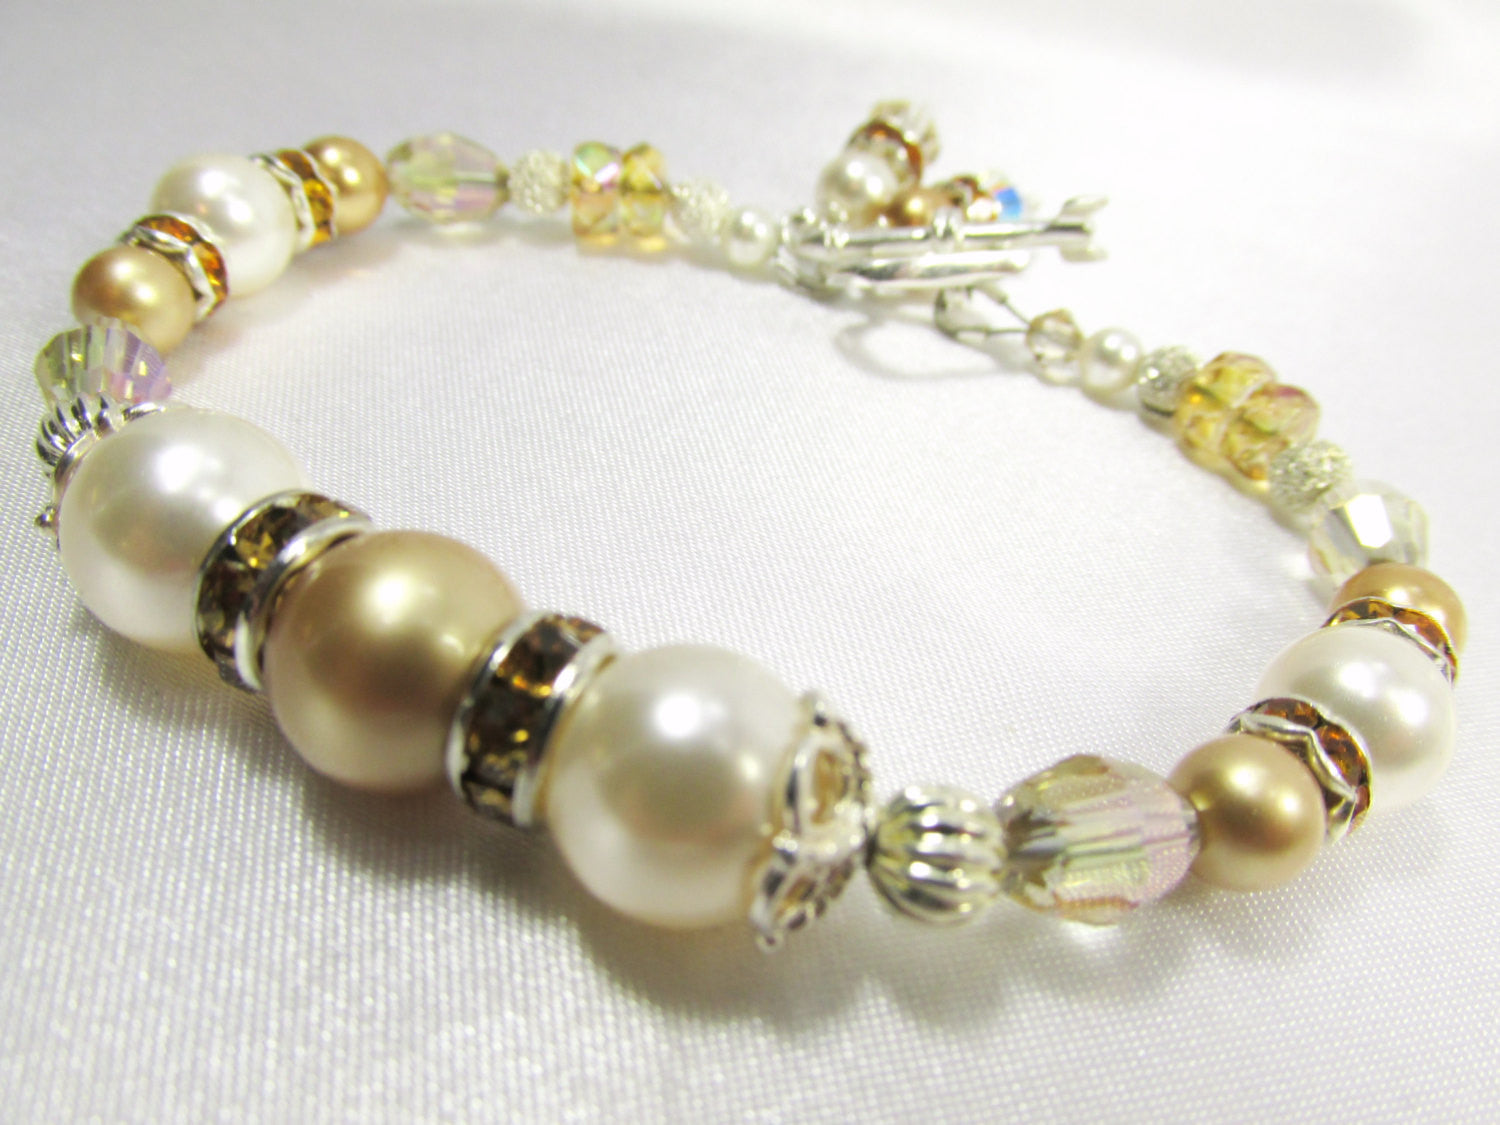 All fine sterling silver Bridal Bracelet in Swarovski White and Gold Pearls and Gold Crystal Beads - Odyssey Creations